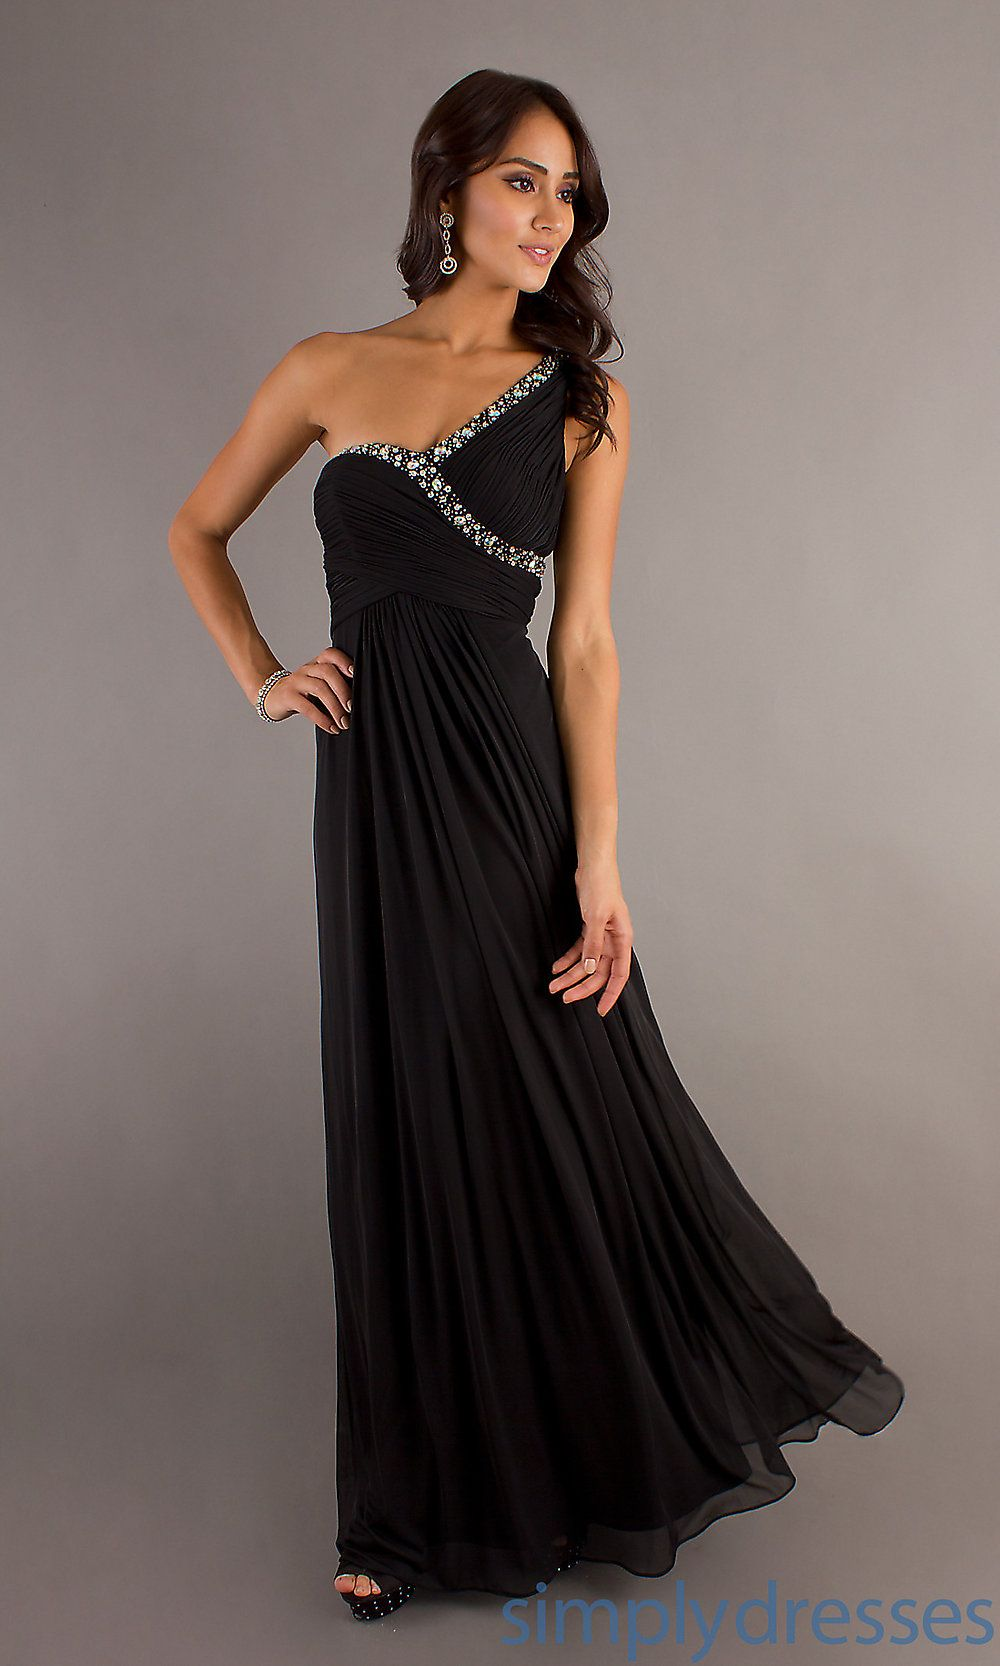 Images of Long Black Formal Dress - The Fashions Of Paradise